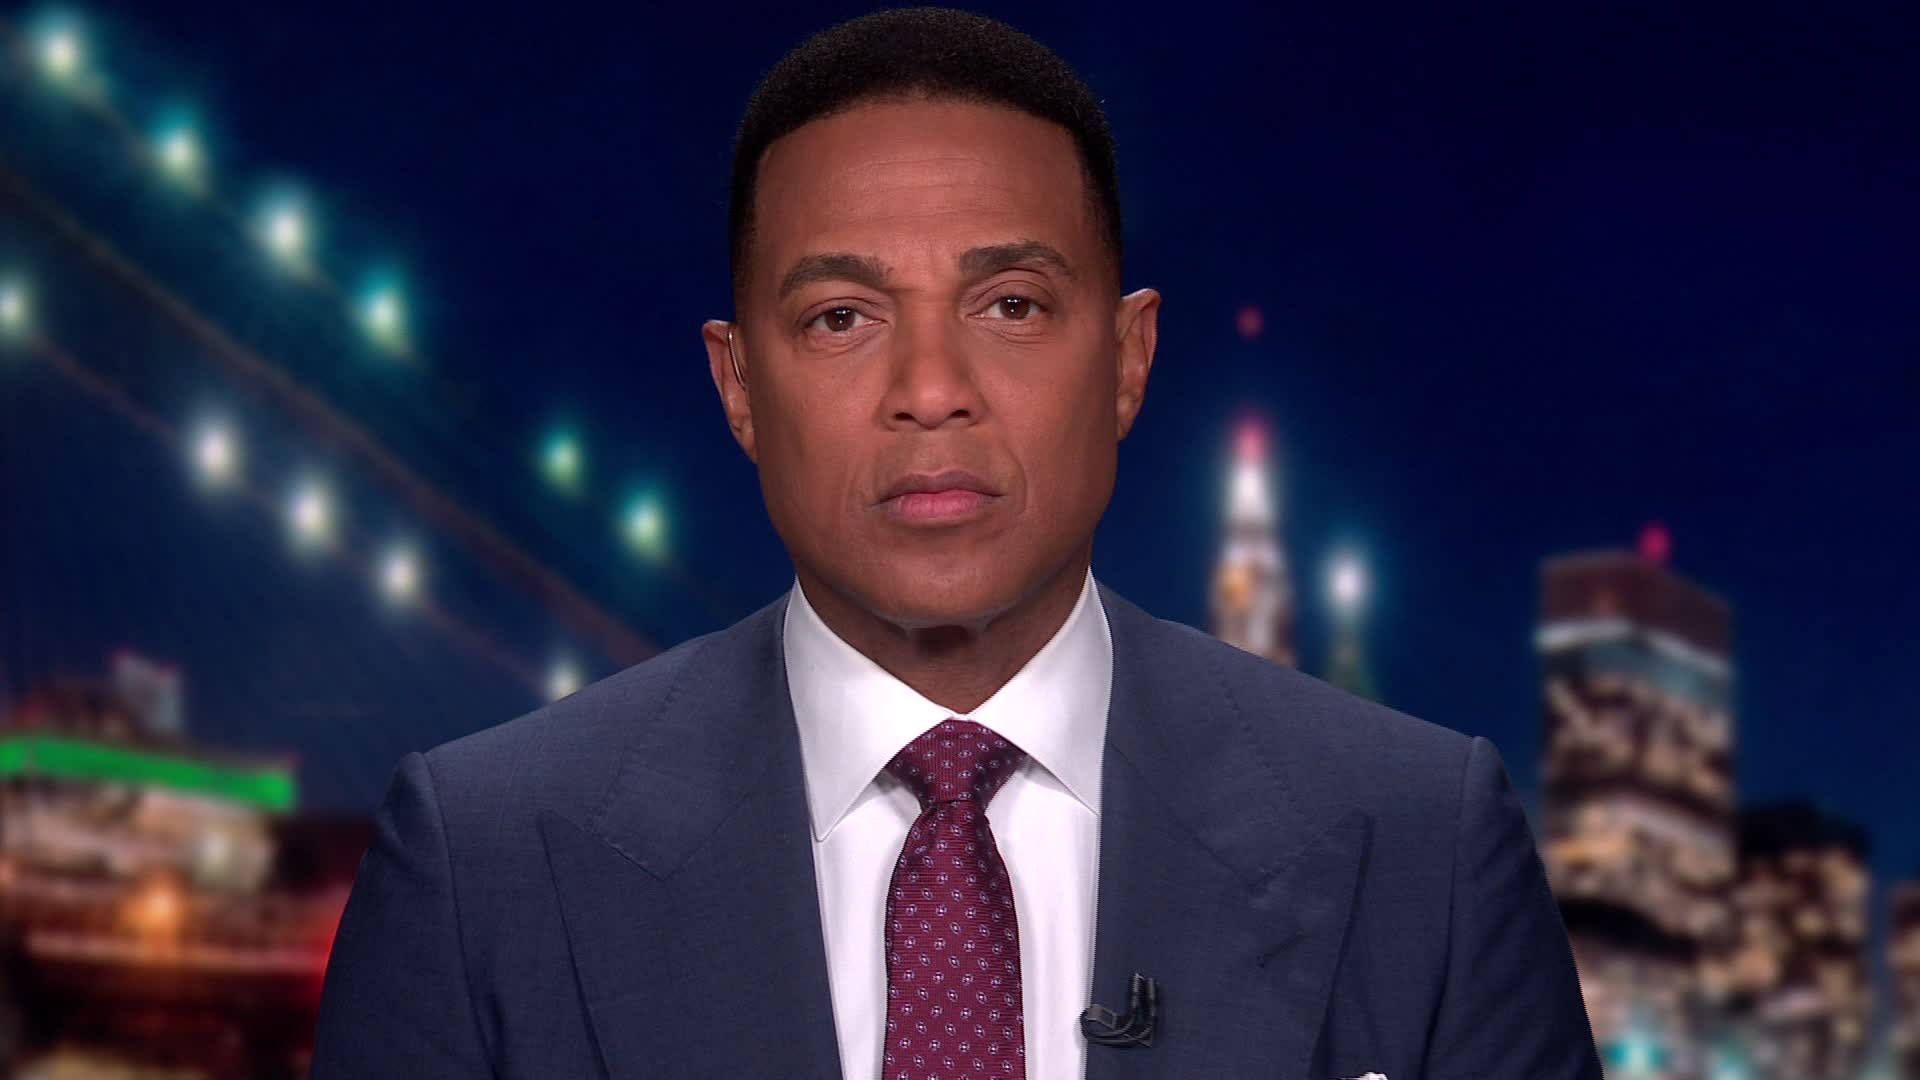 CNN viewers panic after Don Lemon's announcement about his show